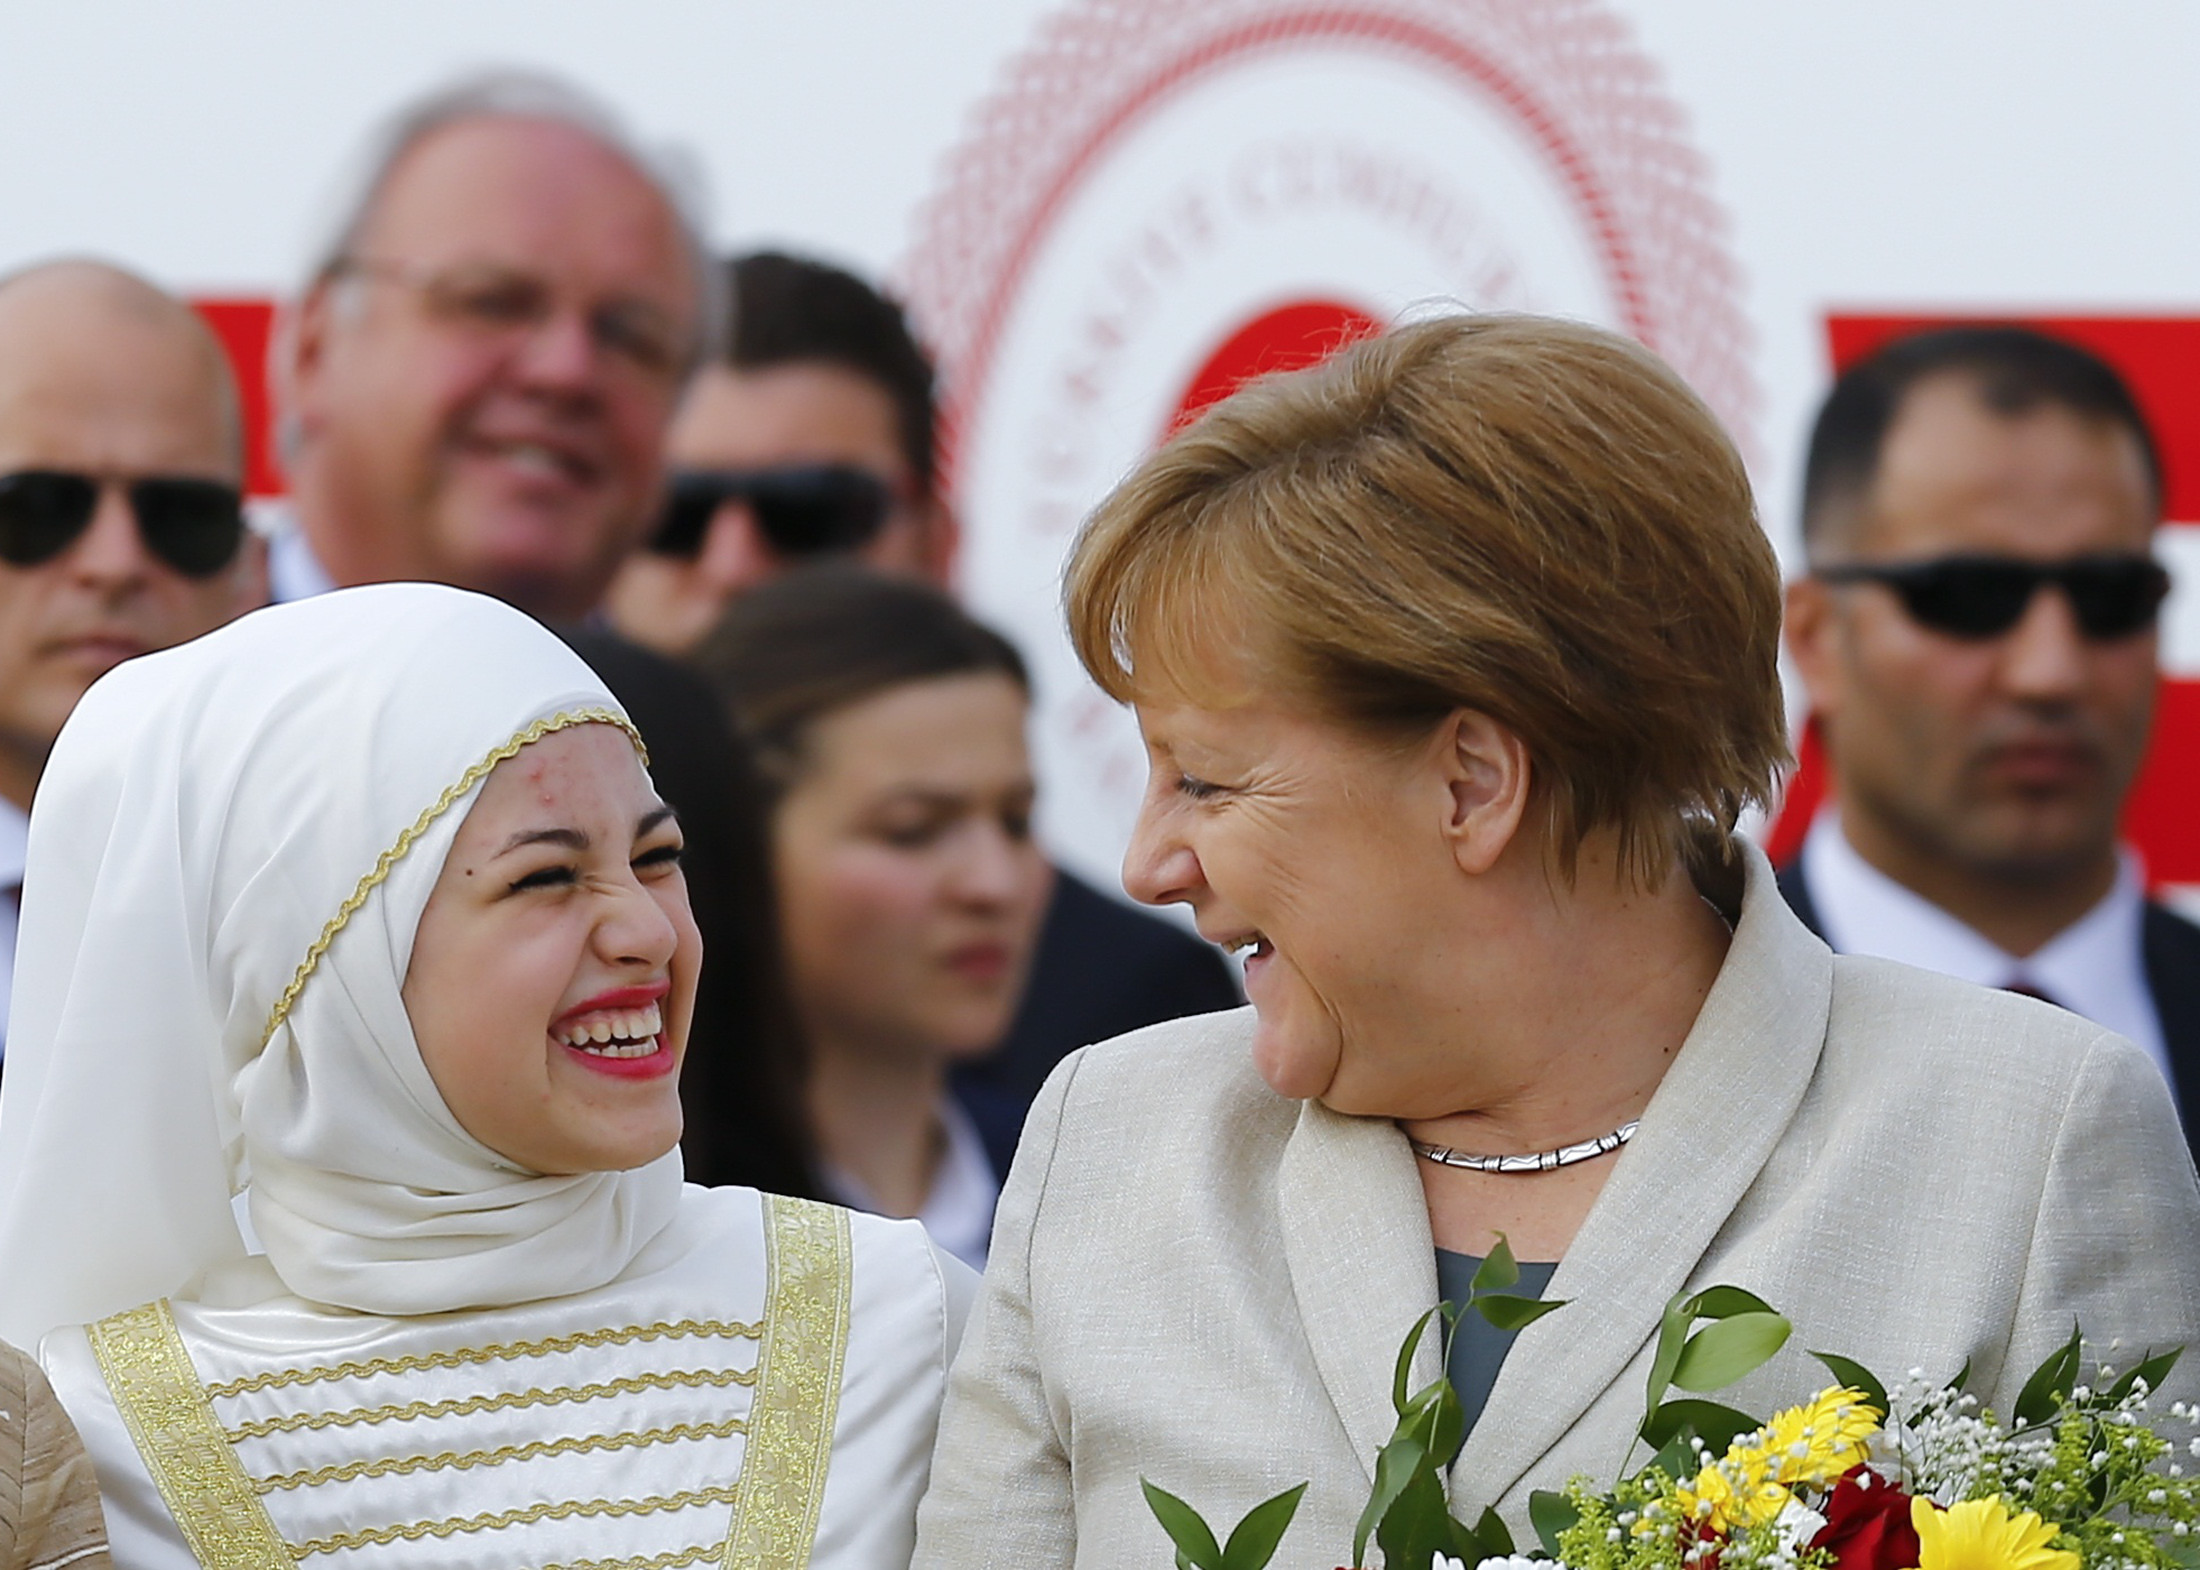 German Chancellor Angela Merkel chats with a girl during a welcoming ceremony at Nizip refugee camp near Gaziantep, Turkey, April 23, 2016. REUTERS/Umit Bektas  TPX IMAGES OF THE DAY - RTX2BCF8